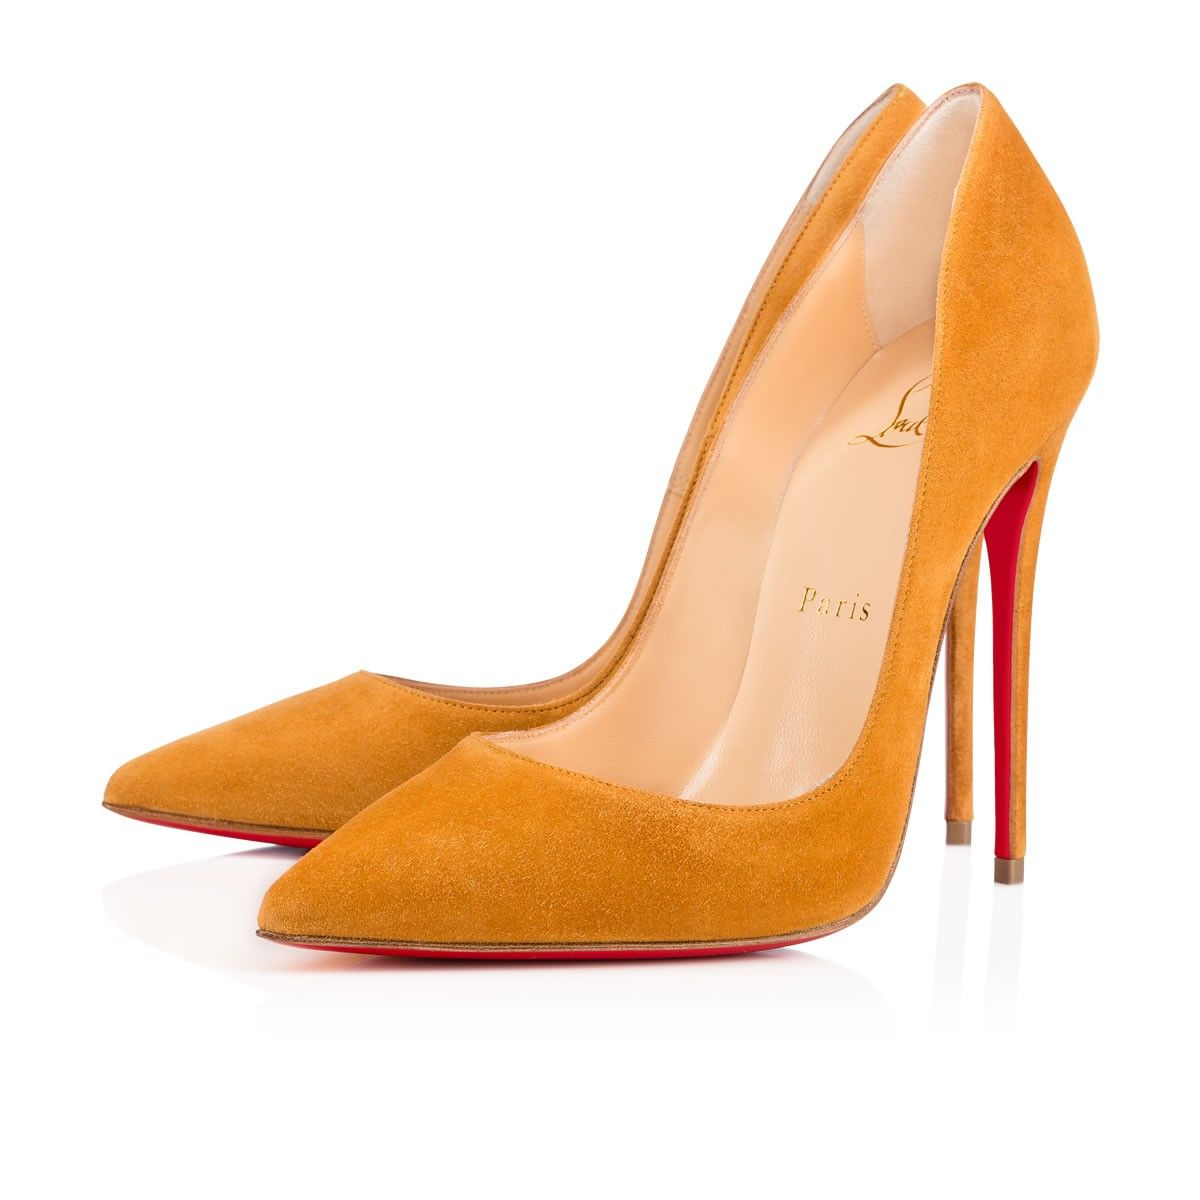 So Kate 120 Patent-leather Pumps - Neutral Christian Louboutin